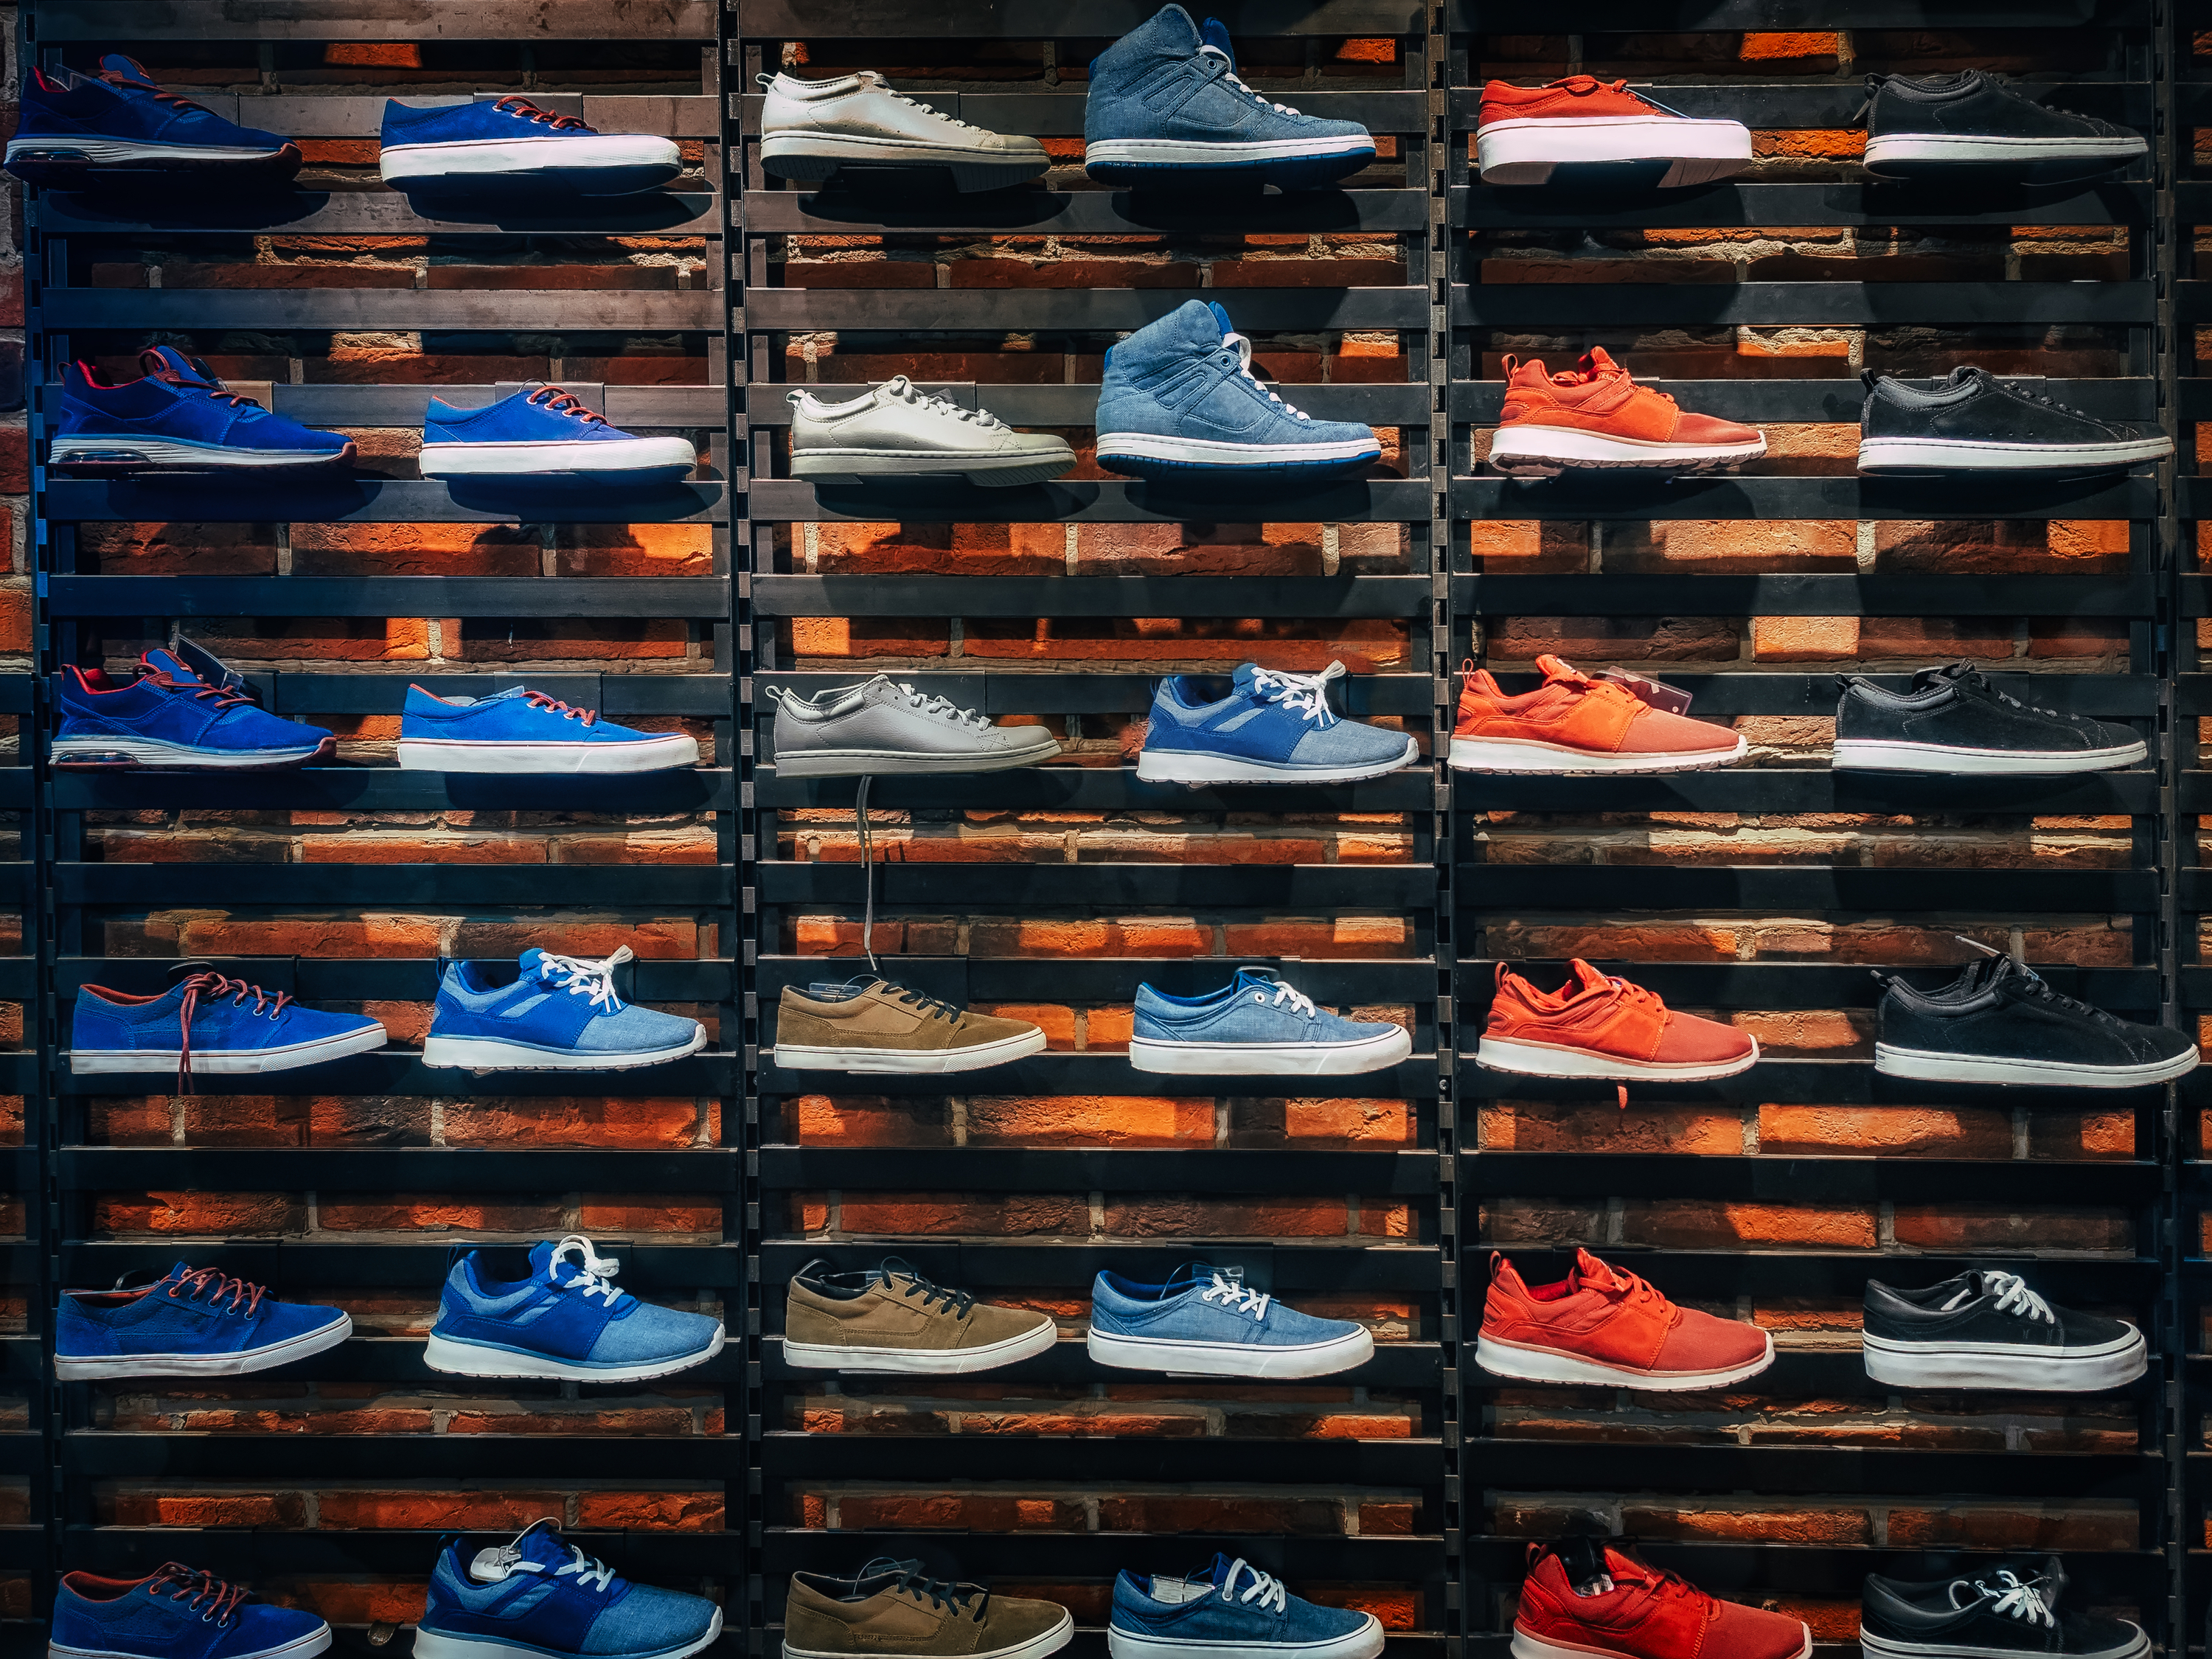 The best Hong Kong sneaker stores